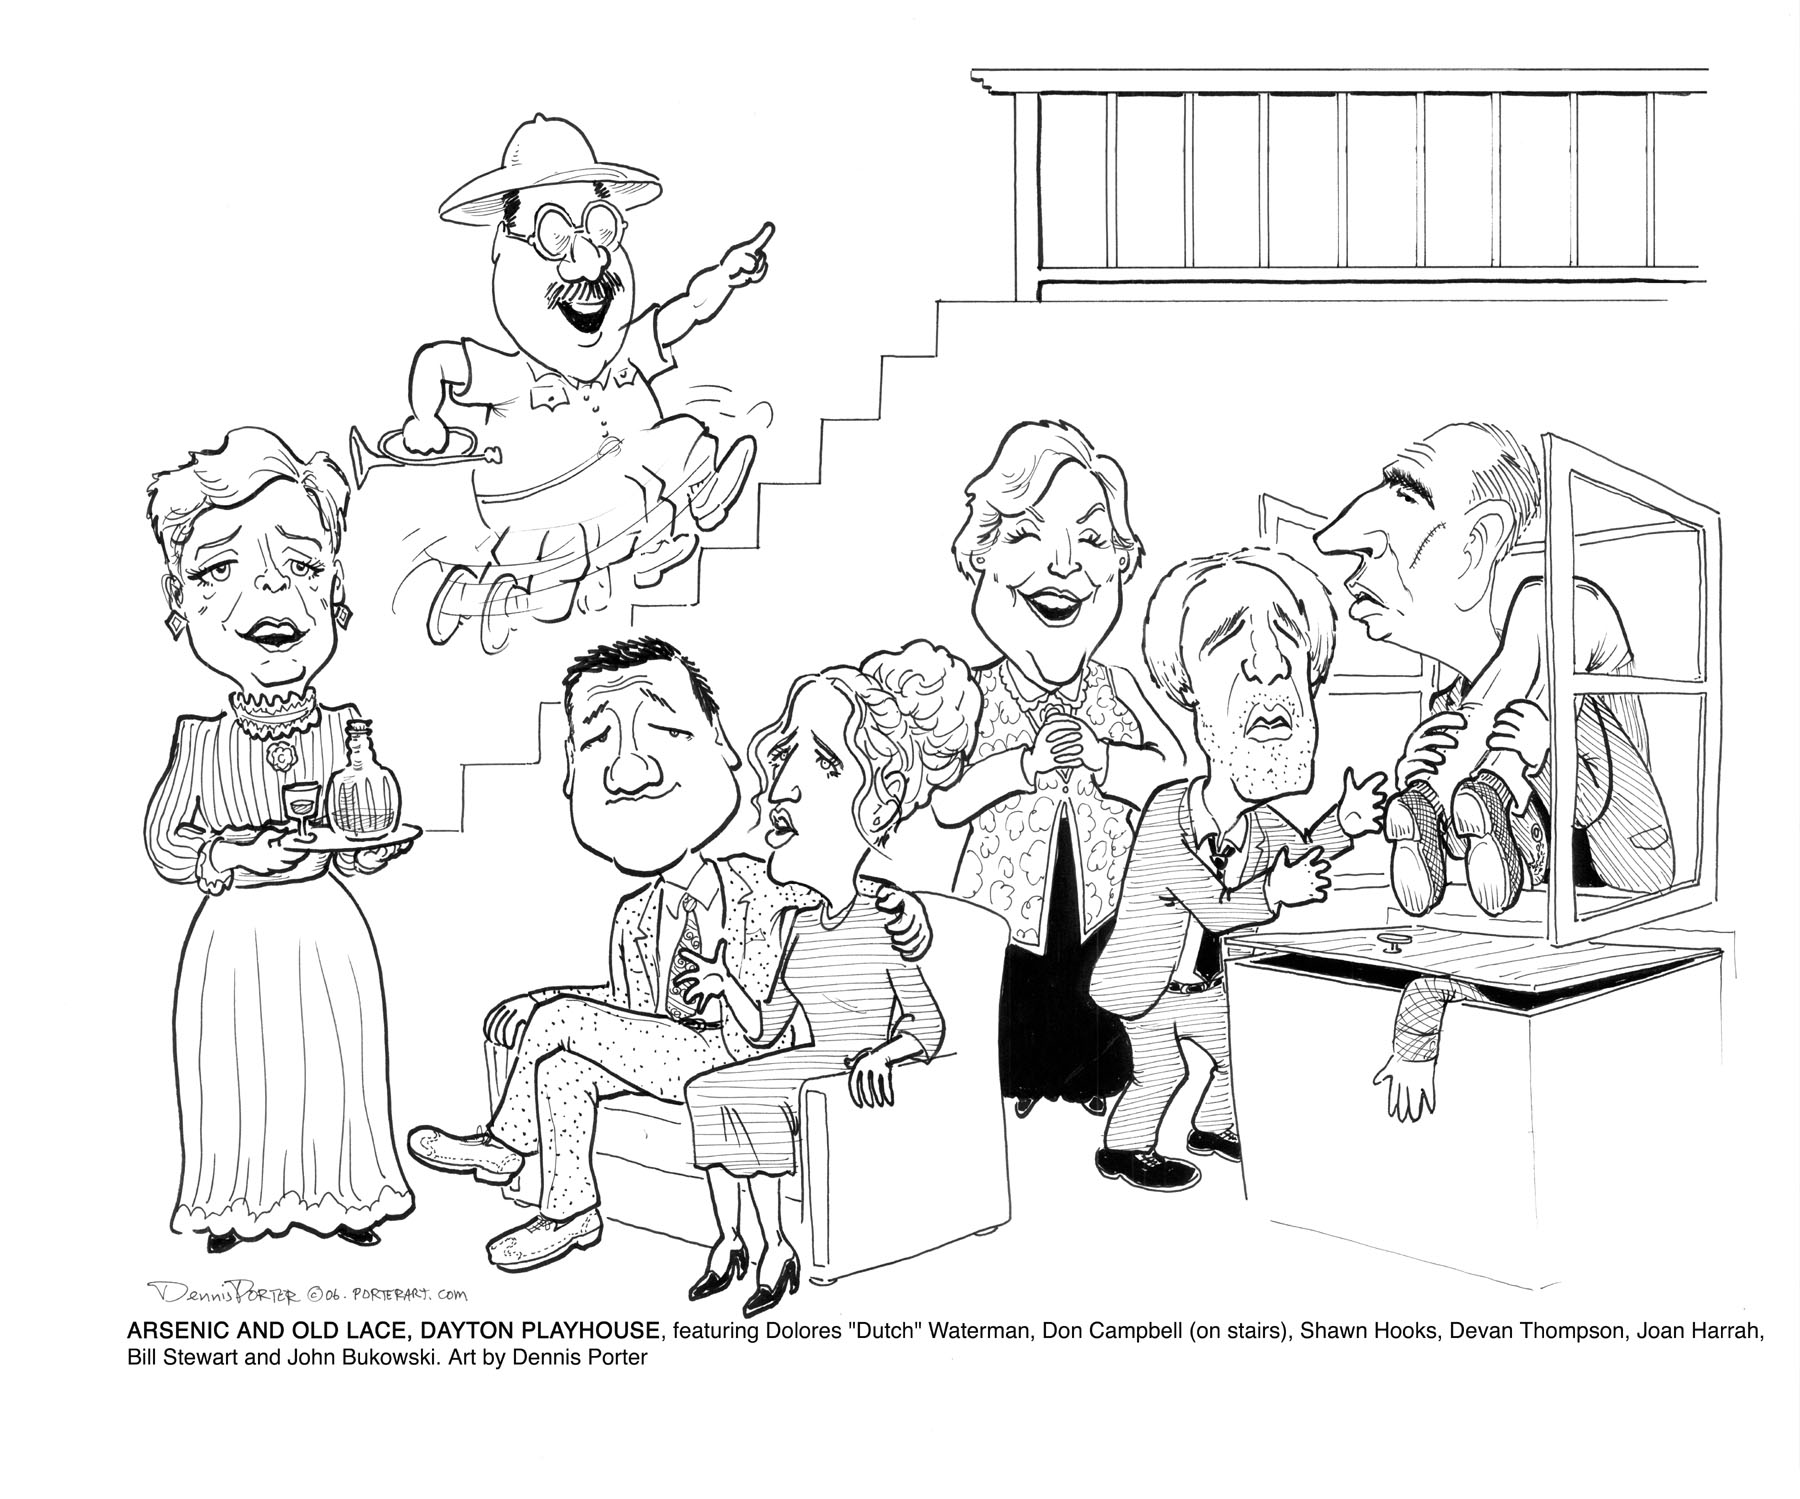 1800x1499 Theatre Caricatures, Caricature Of Actors Performing In Plays